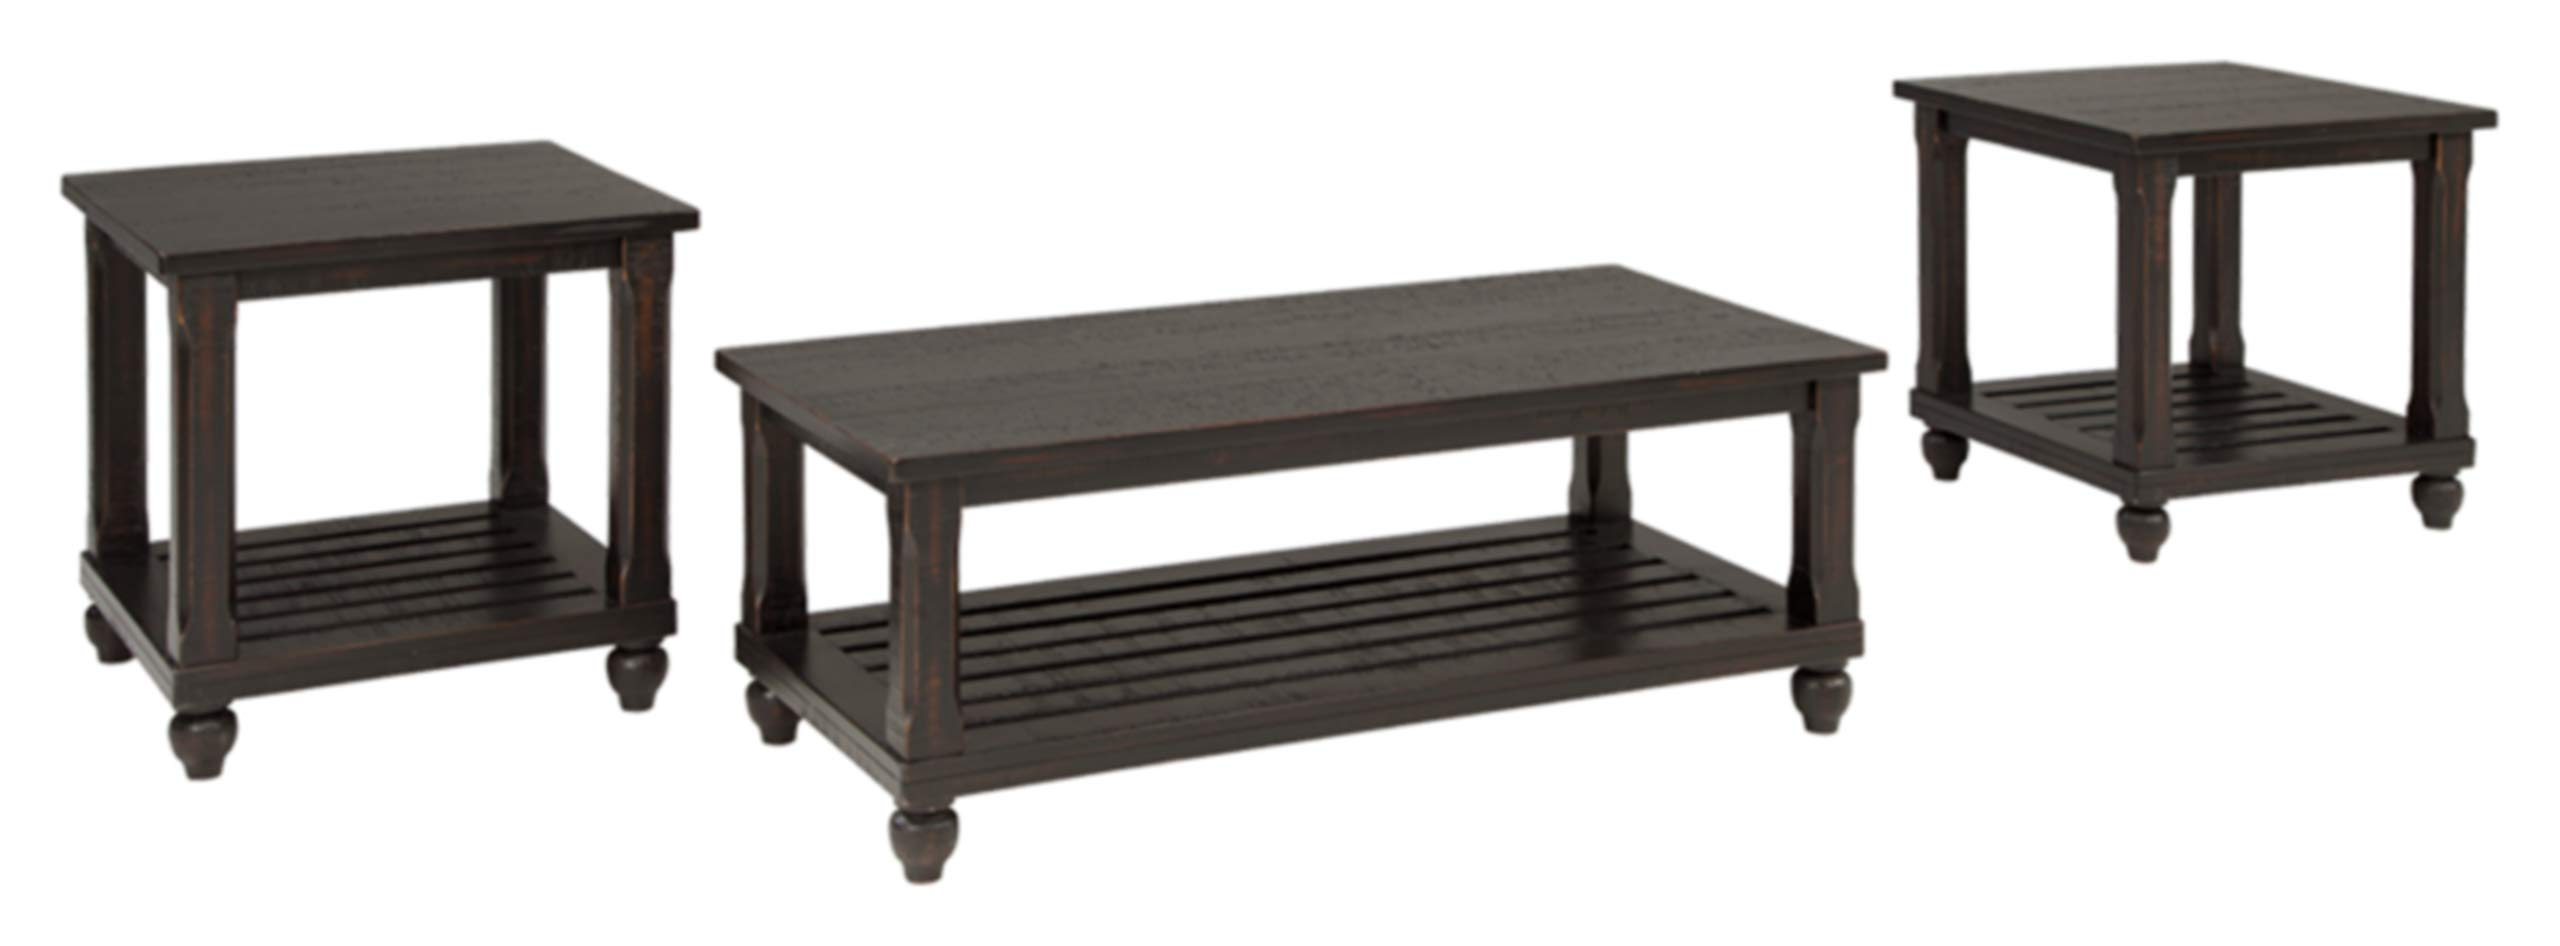 Signature Design by Ashley - Mallacar Contemporary 3-Piece Table Set - Includes Coffee Table & 2 End Tables - Dark Wood